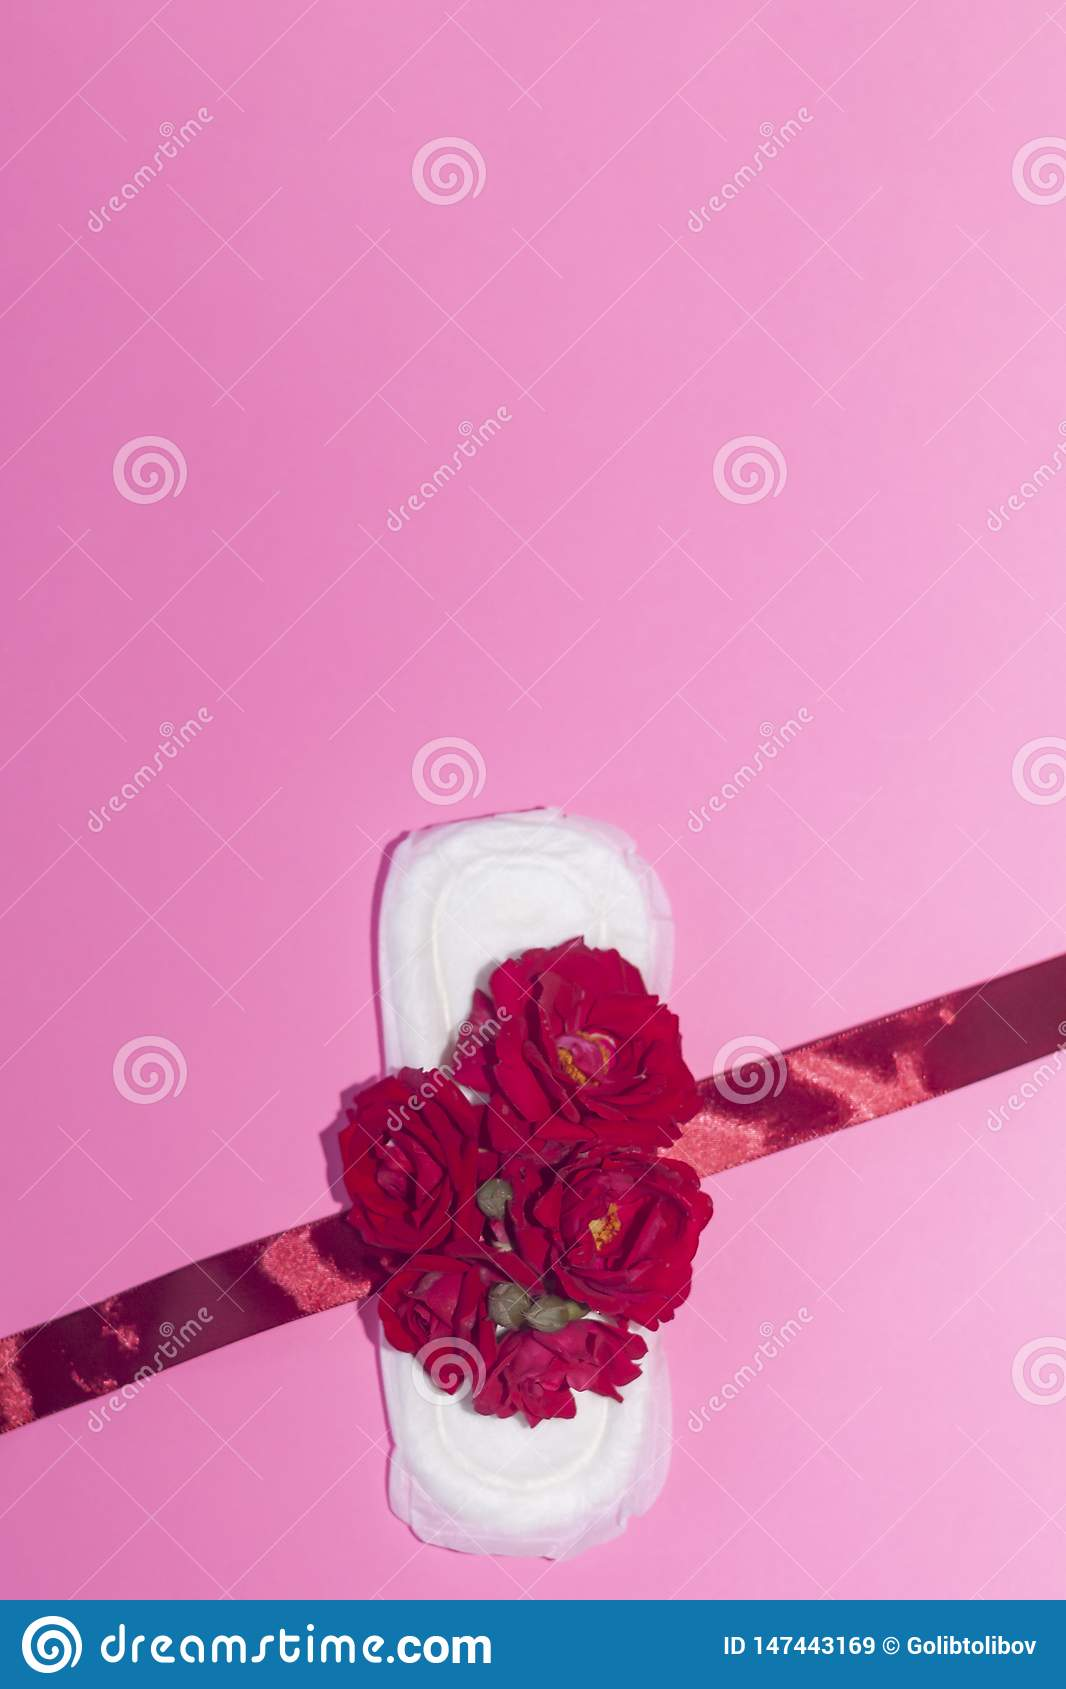 Female`s hygiene products on pink background. Concept of critical days, menstrual cycle, period days, PMS